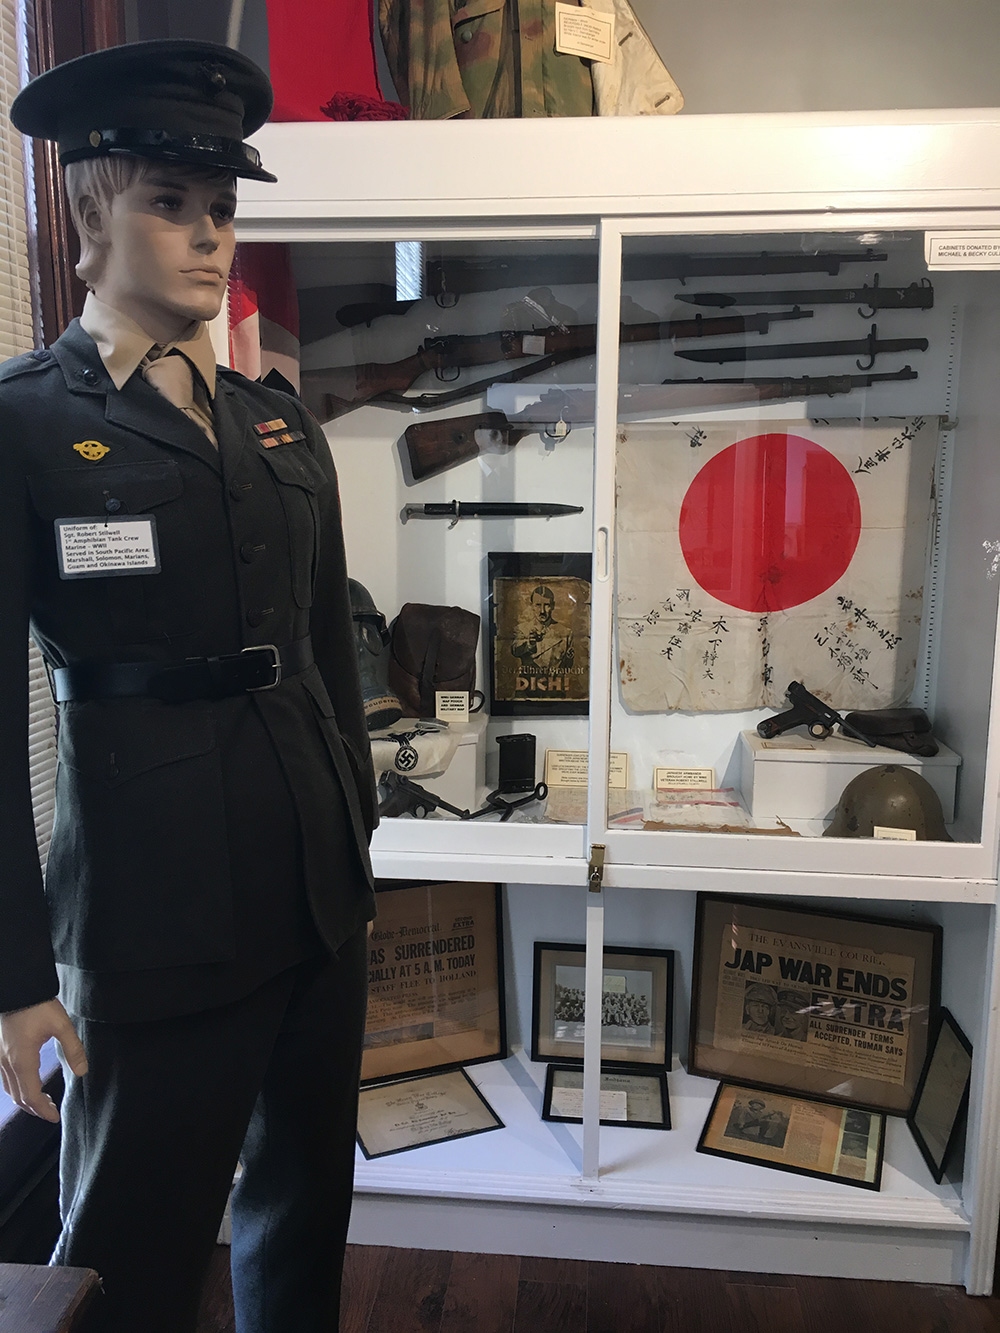 Military Room Exhibit